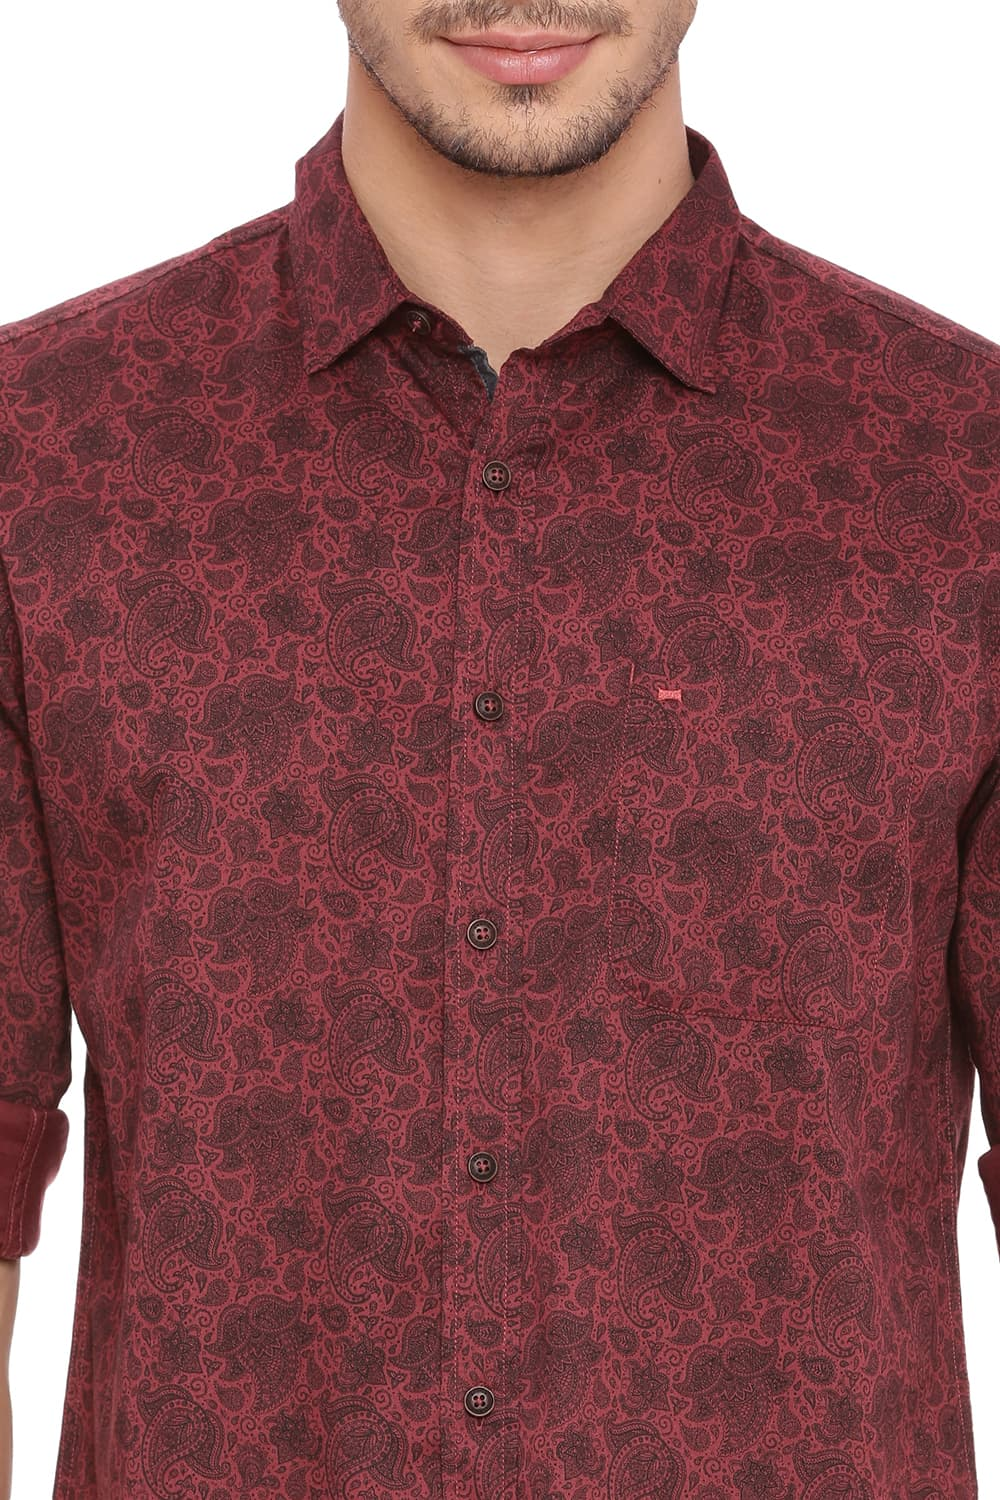 bc26e1e183 Basics Slim Fit Cordovan Red Twill Printed Shirt-18bsh39248